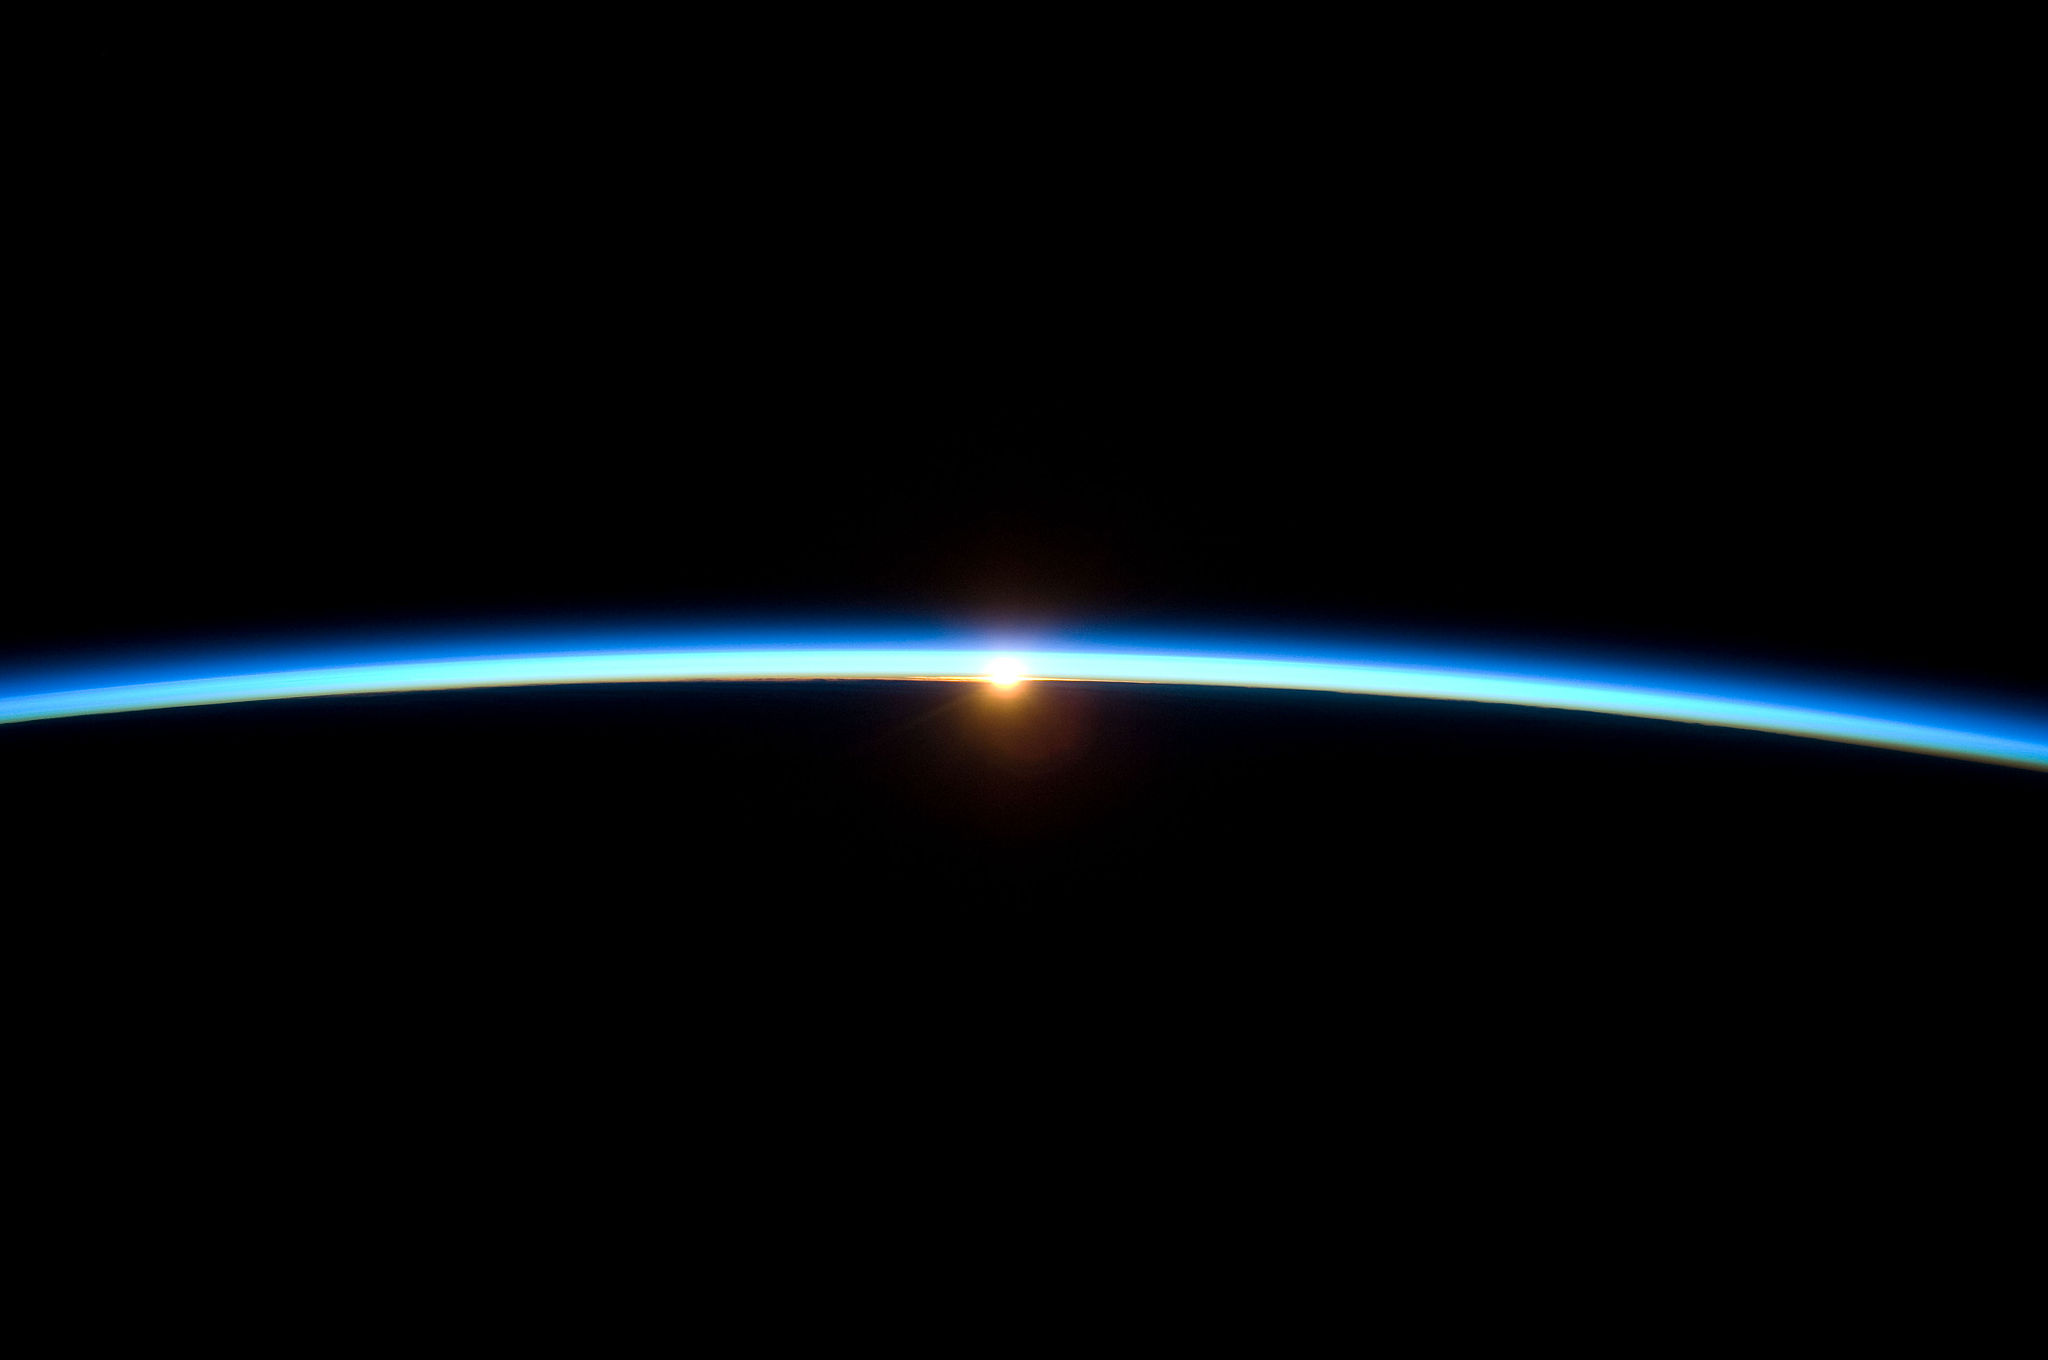 2000.Thin_Line_of_Earth's_Atmosphere_and_the_Setting_Sun (1)